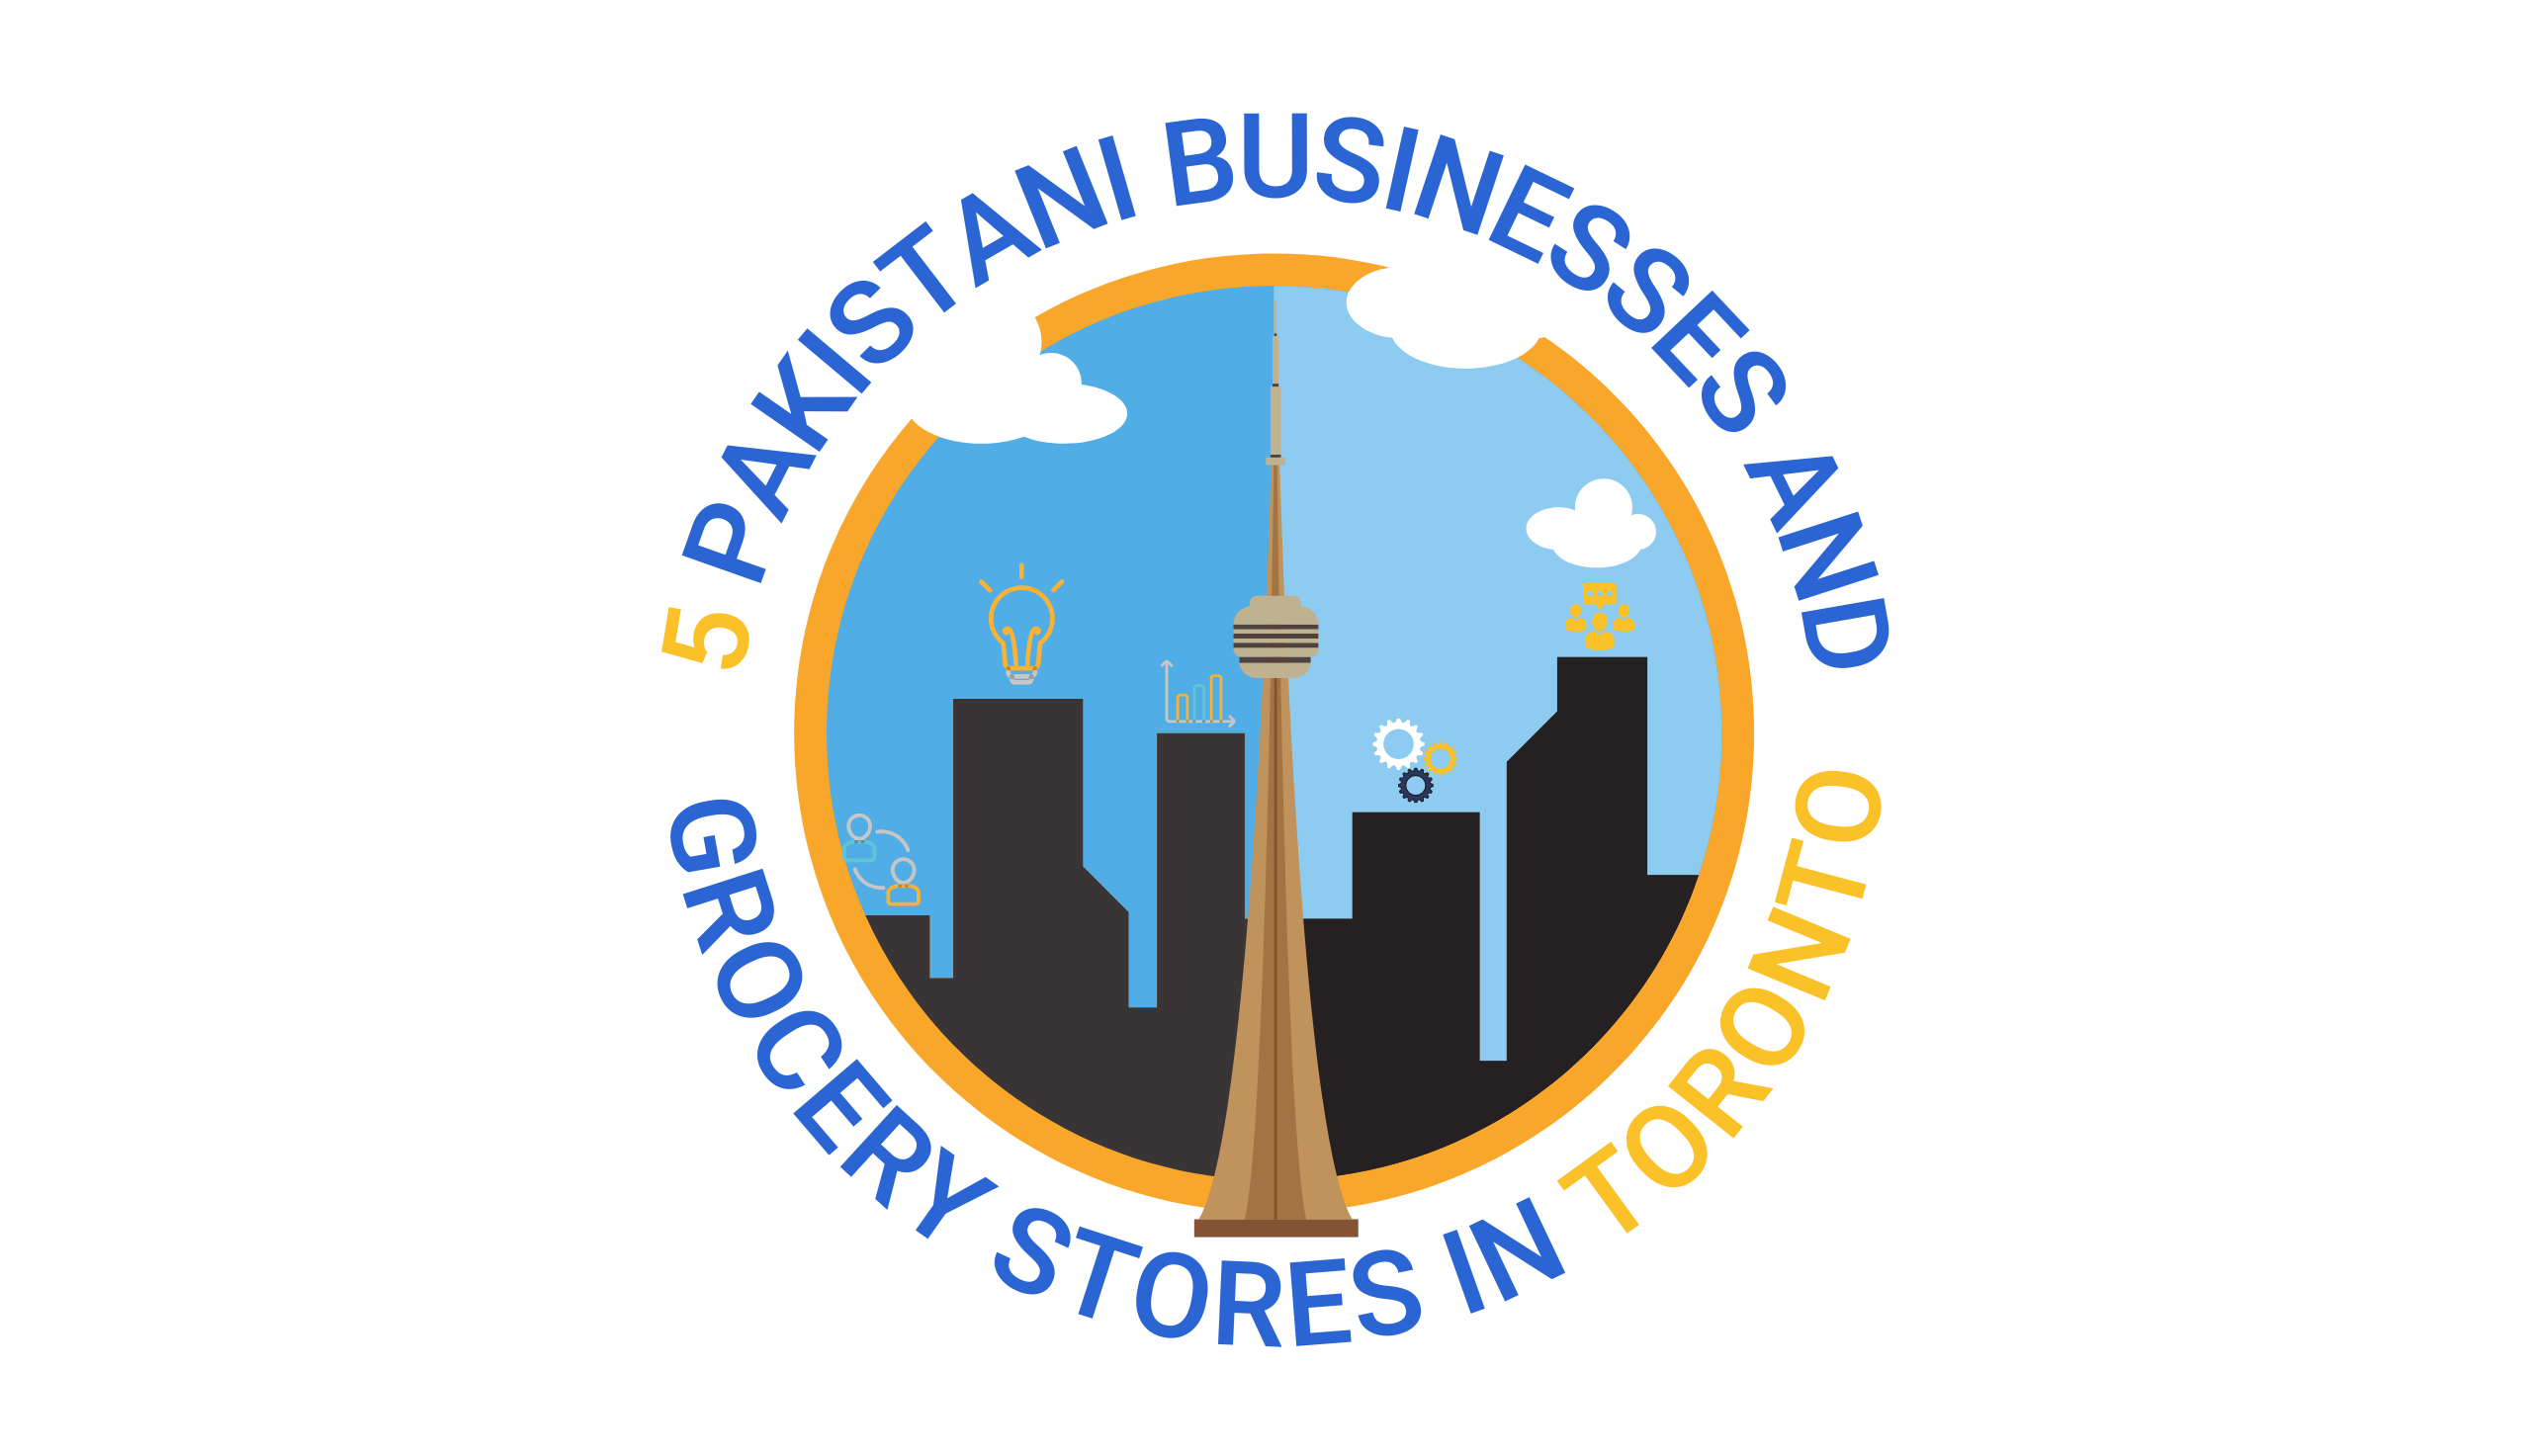 A list of popular Pakistani busineses in Toronto